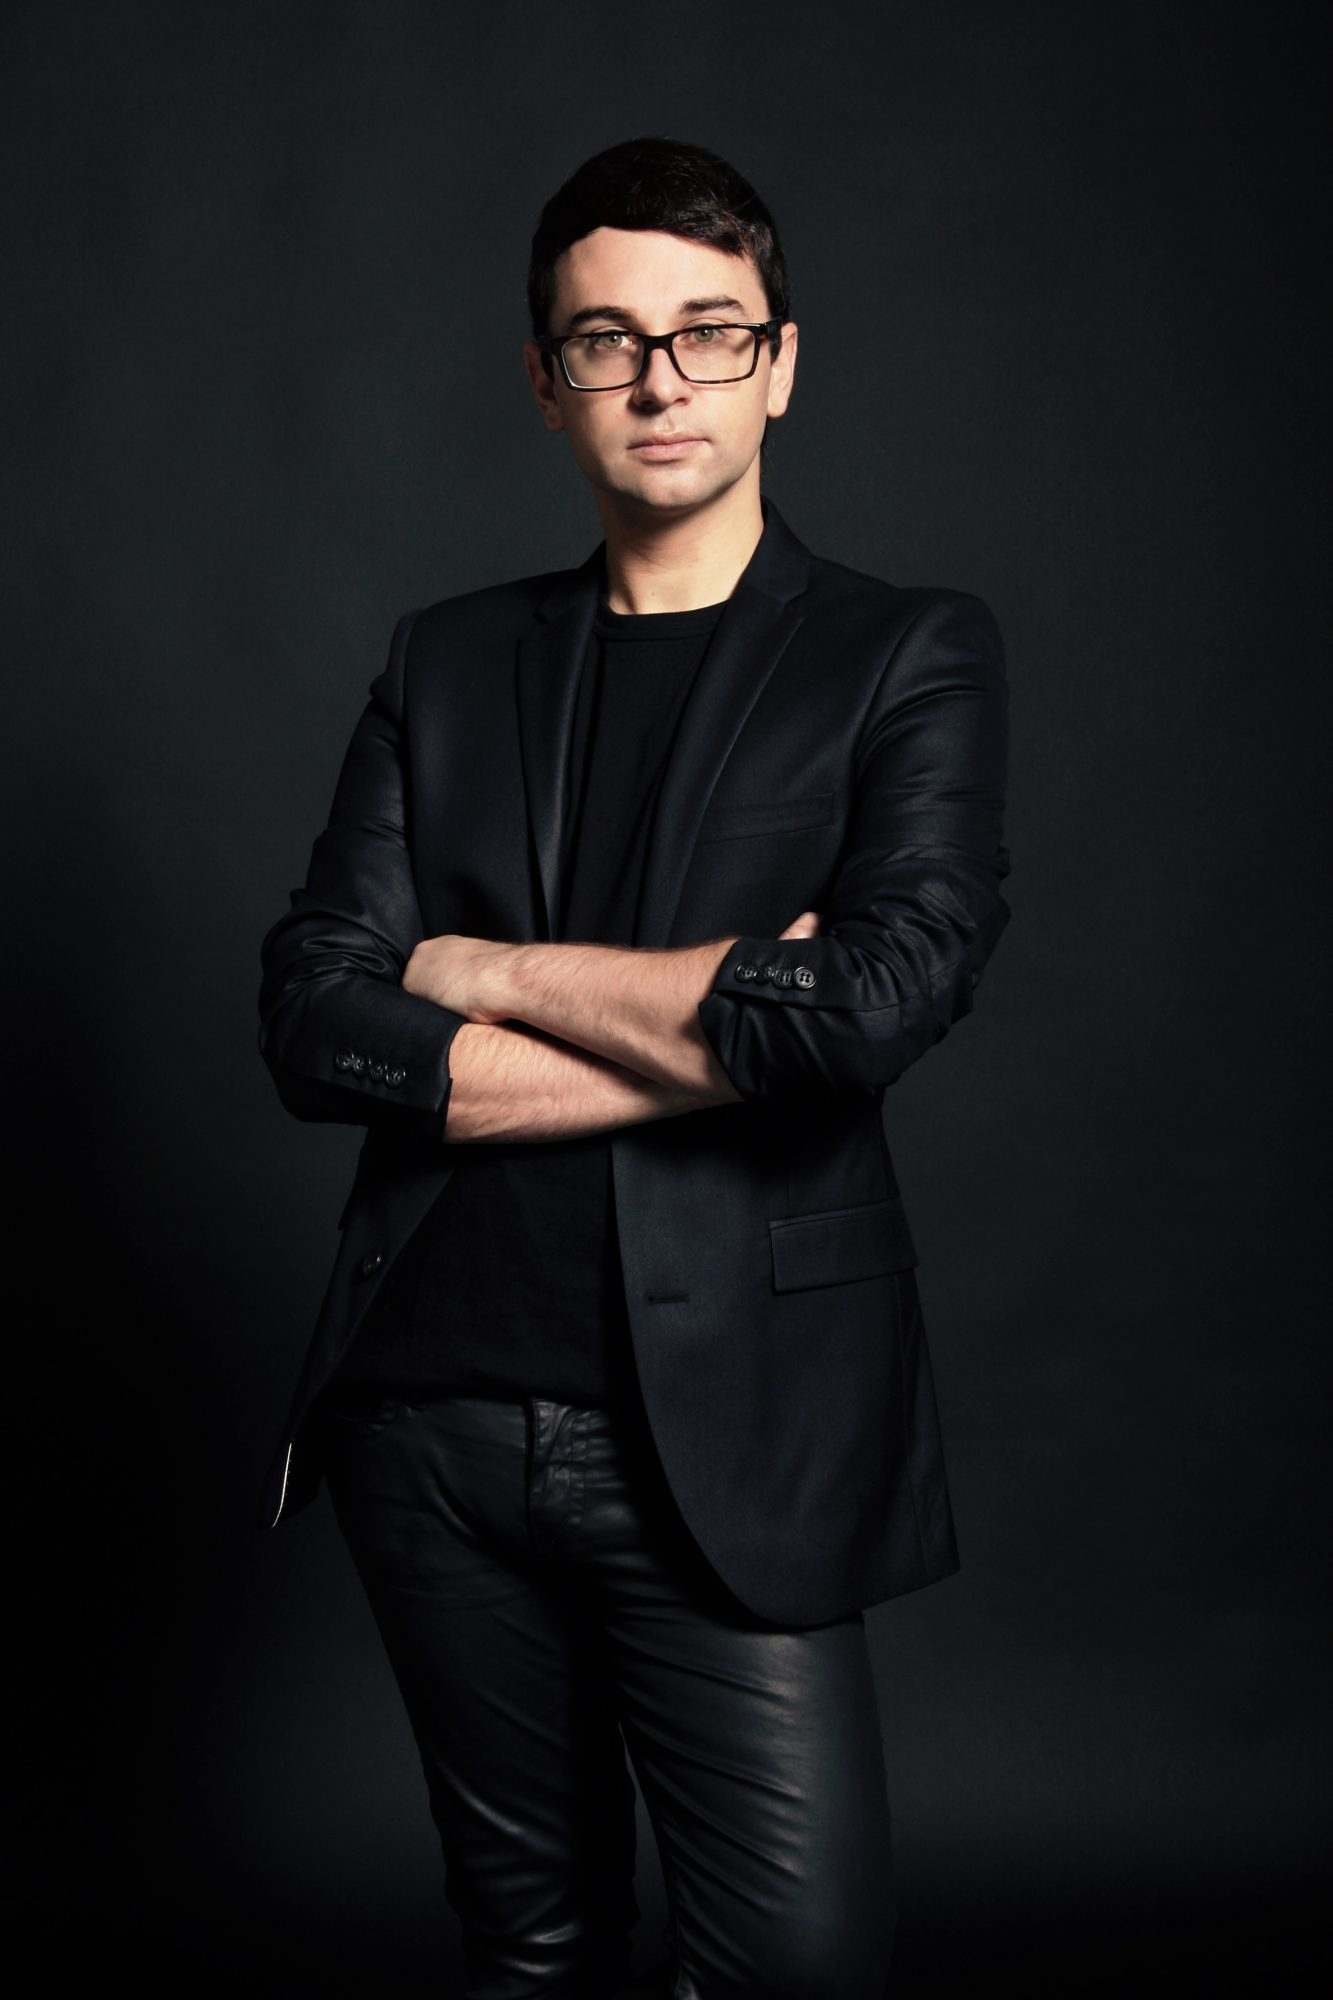 Christian Siriano - Photo